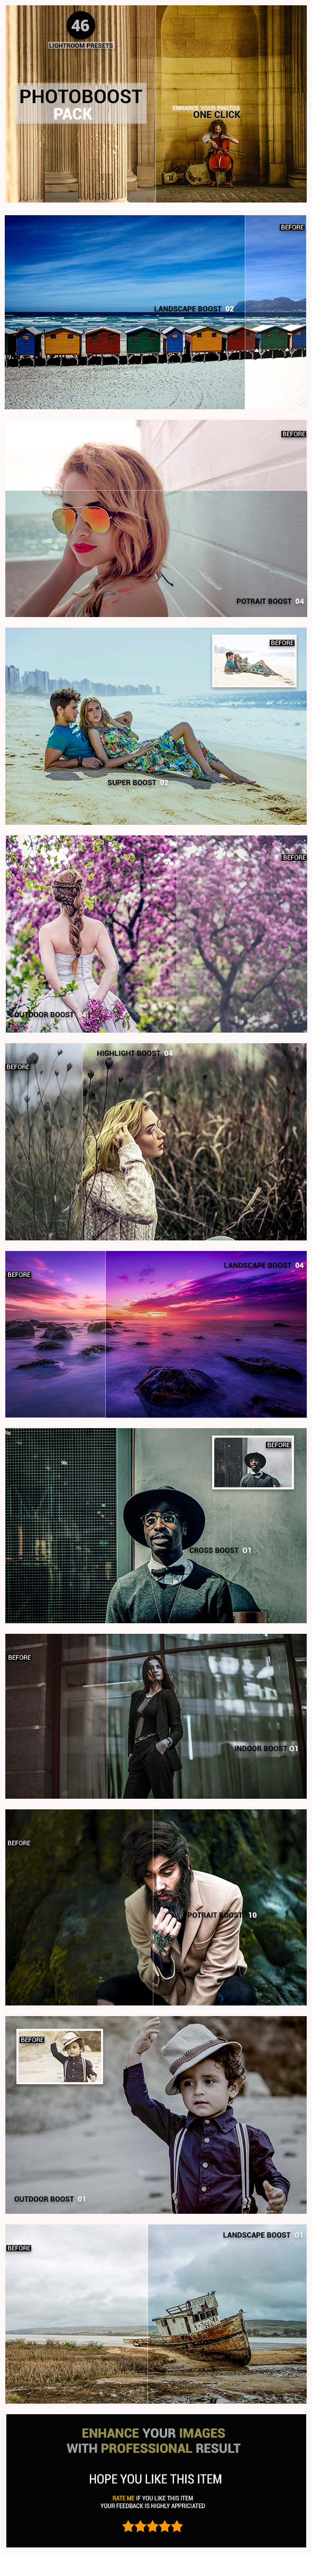 Photoboost Pack - Lightroom Presets Add-ons